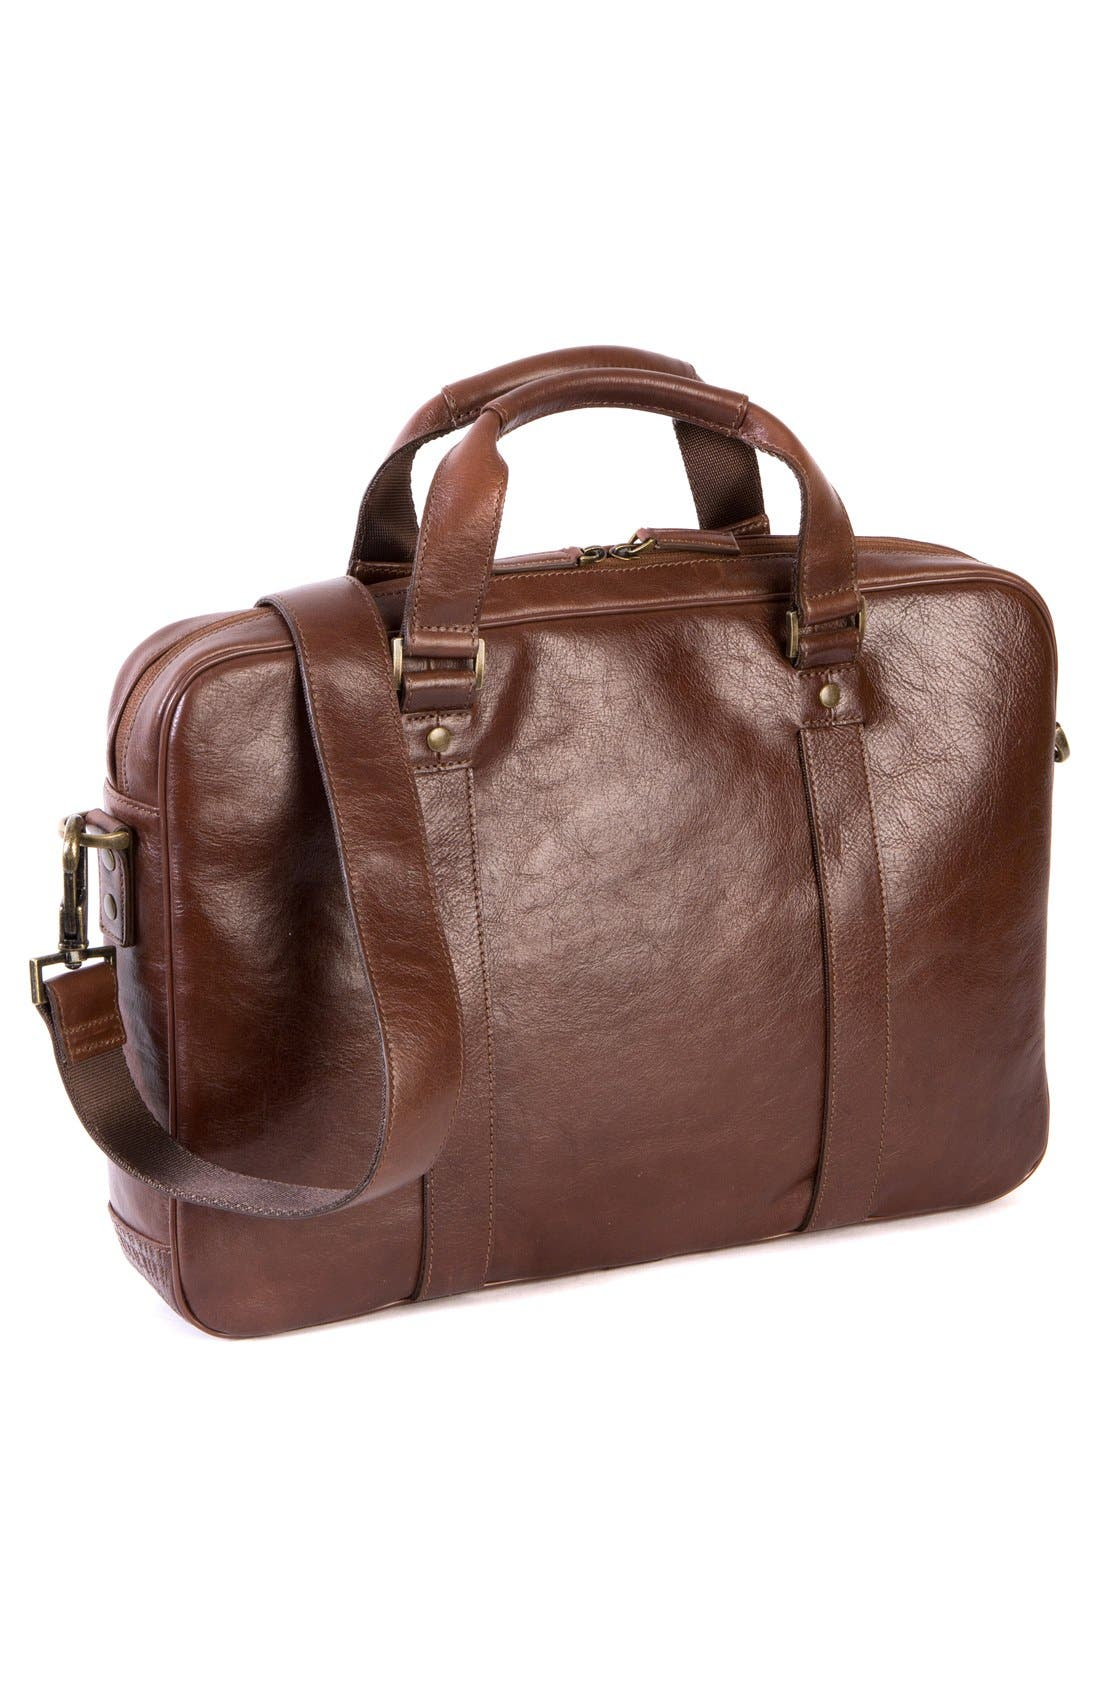 Becker Leather Briefcase,                             Alternate thumbnail 3, color,                             215